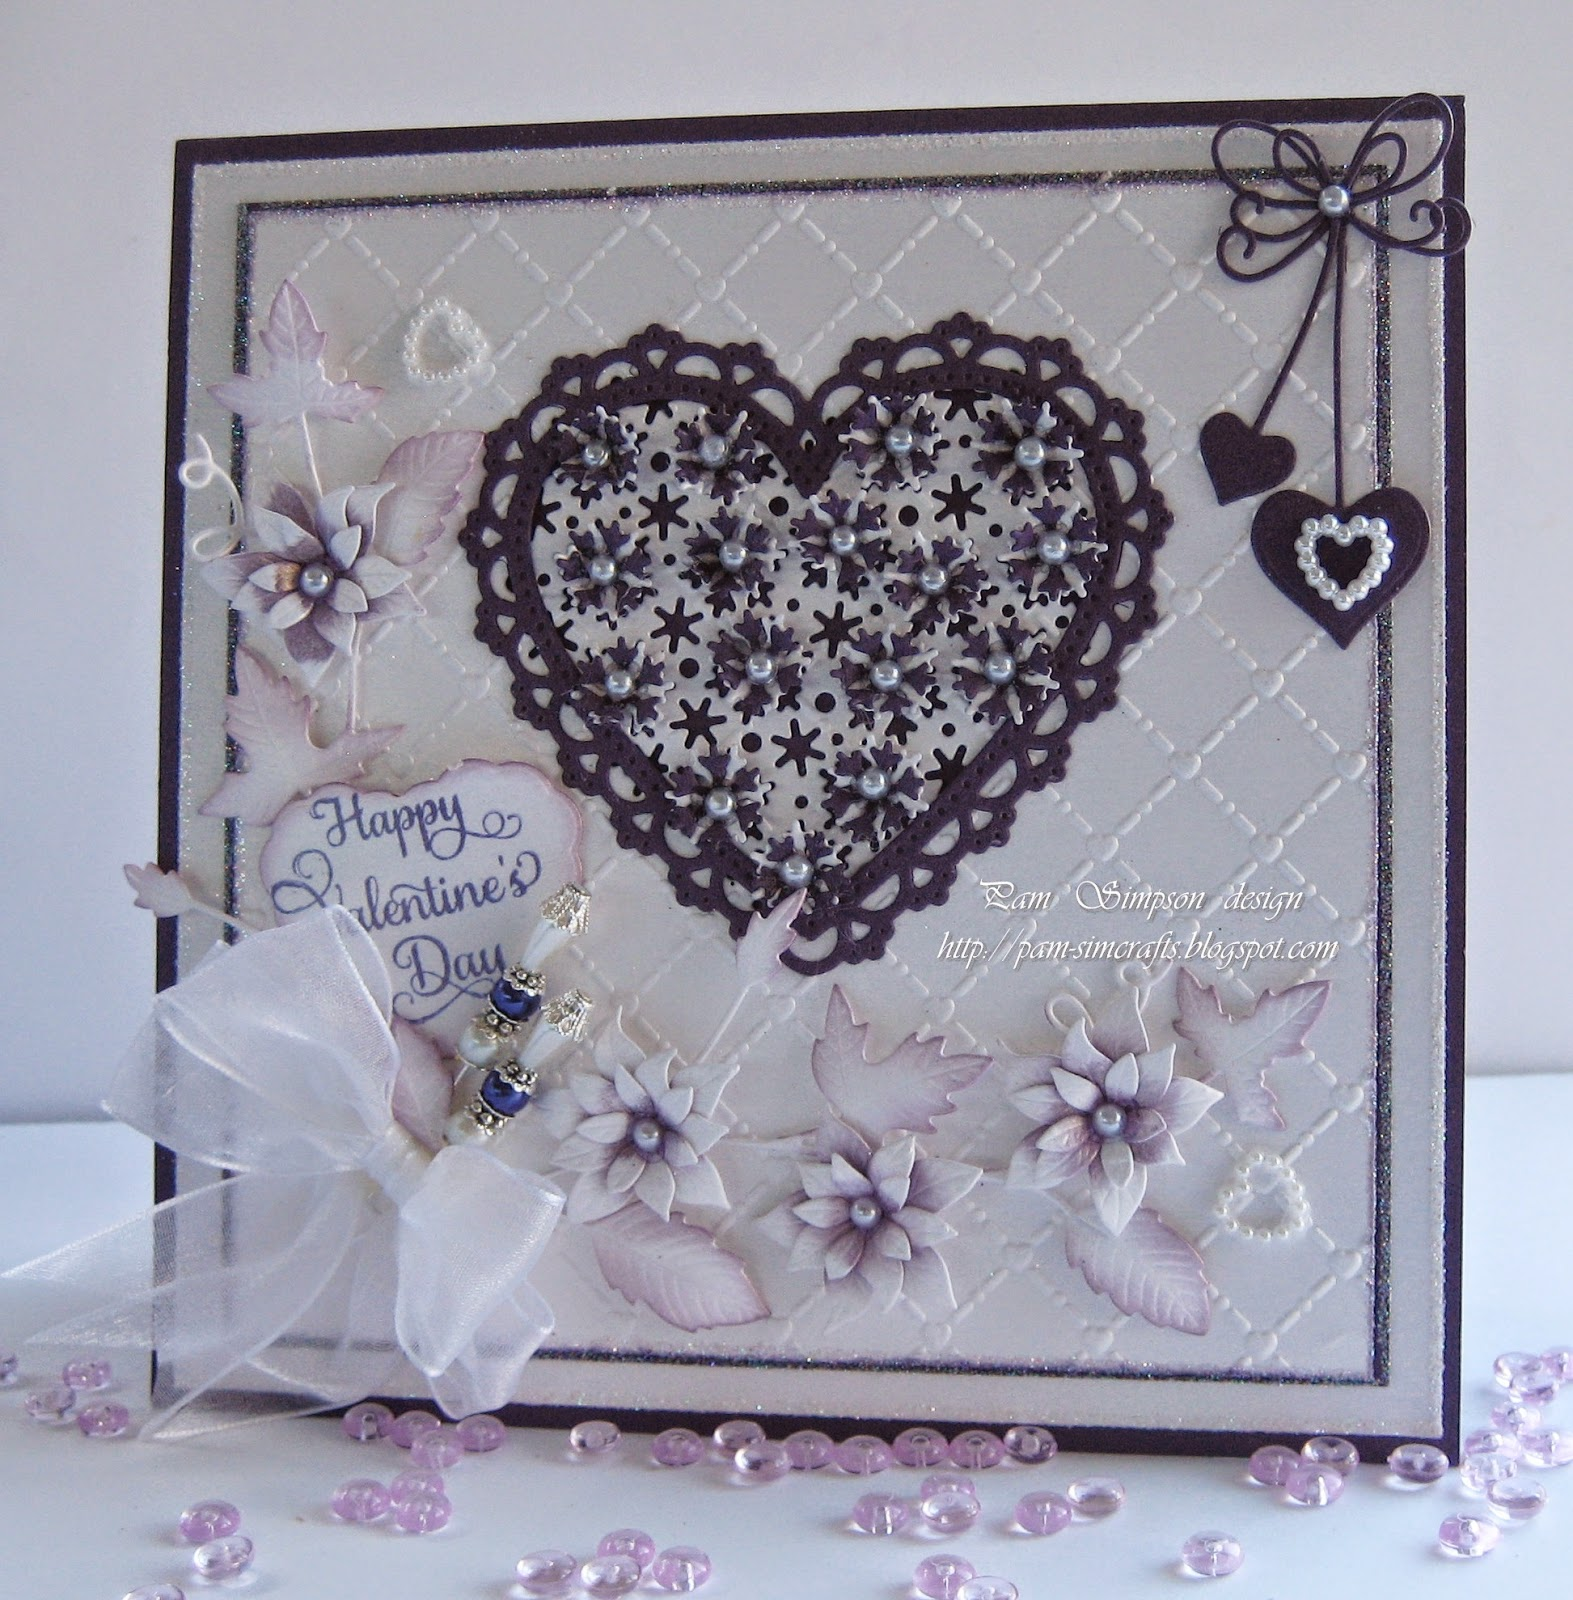 Pamscrafts Valentine Card Using Christmas Dies From